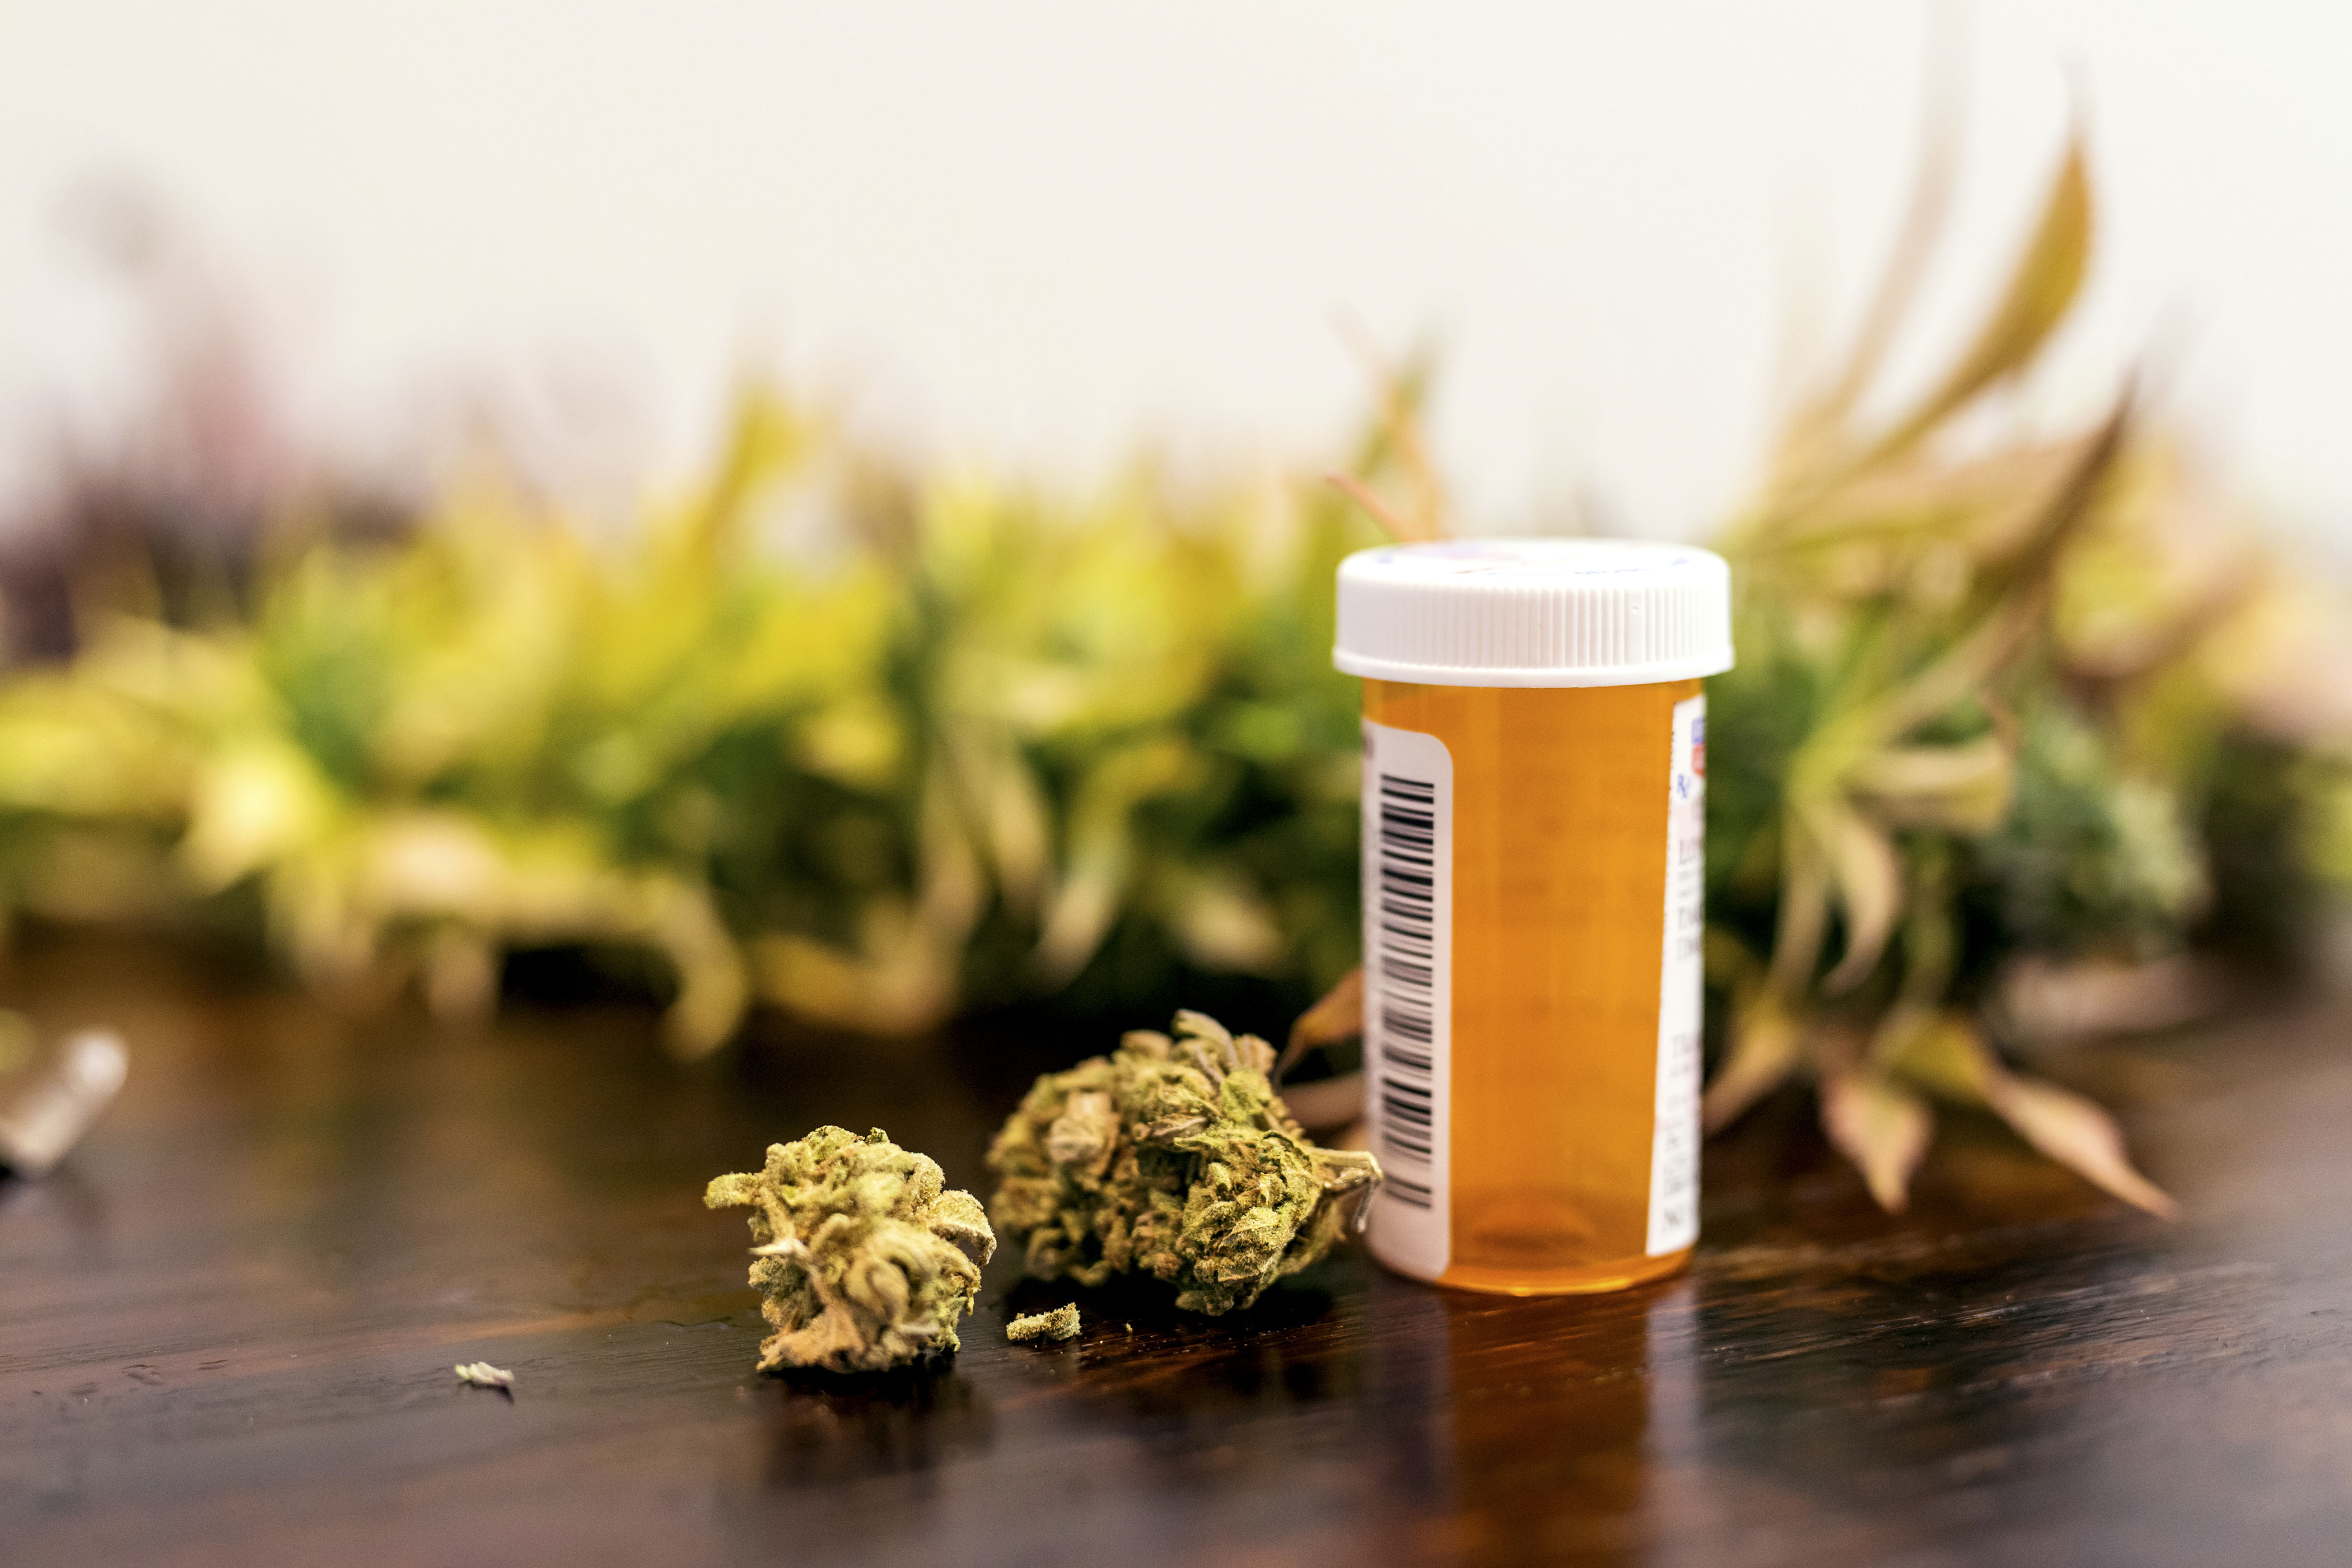 Marijuana buds sitting next to prescription medicine bottle. (Getty Images)